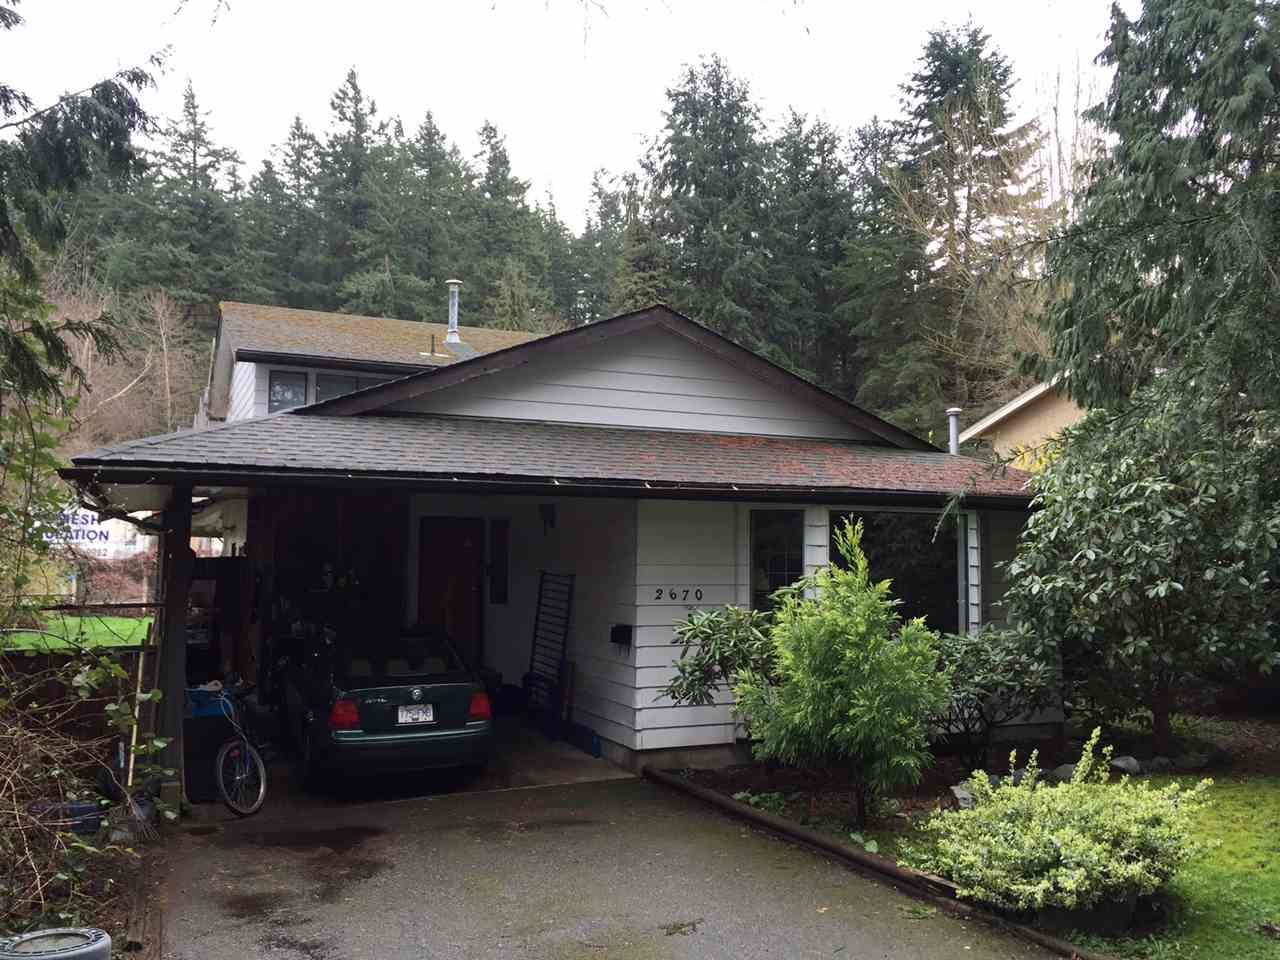 """Main Photo: 2670 127A Street in Surrey: Crescent Bch Ocean Pk. House for sale in """"Ocean Park Crescent Beach"""" (South Surrey White Rock)  : MLS®# R2045182"""